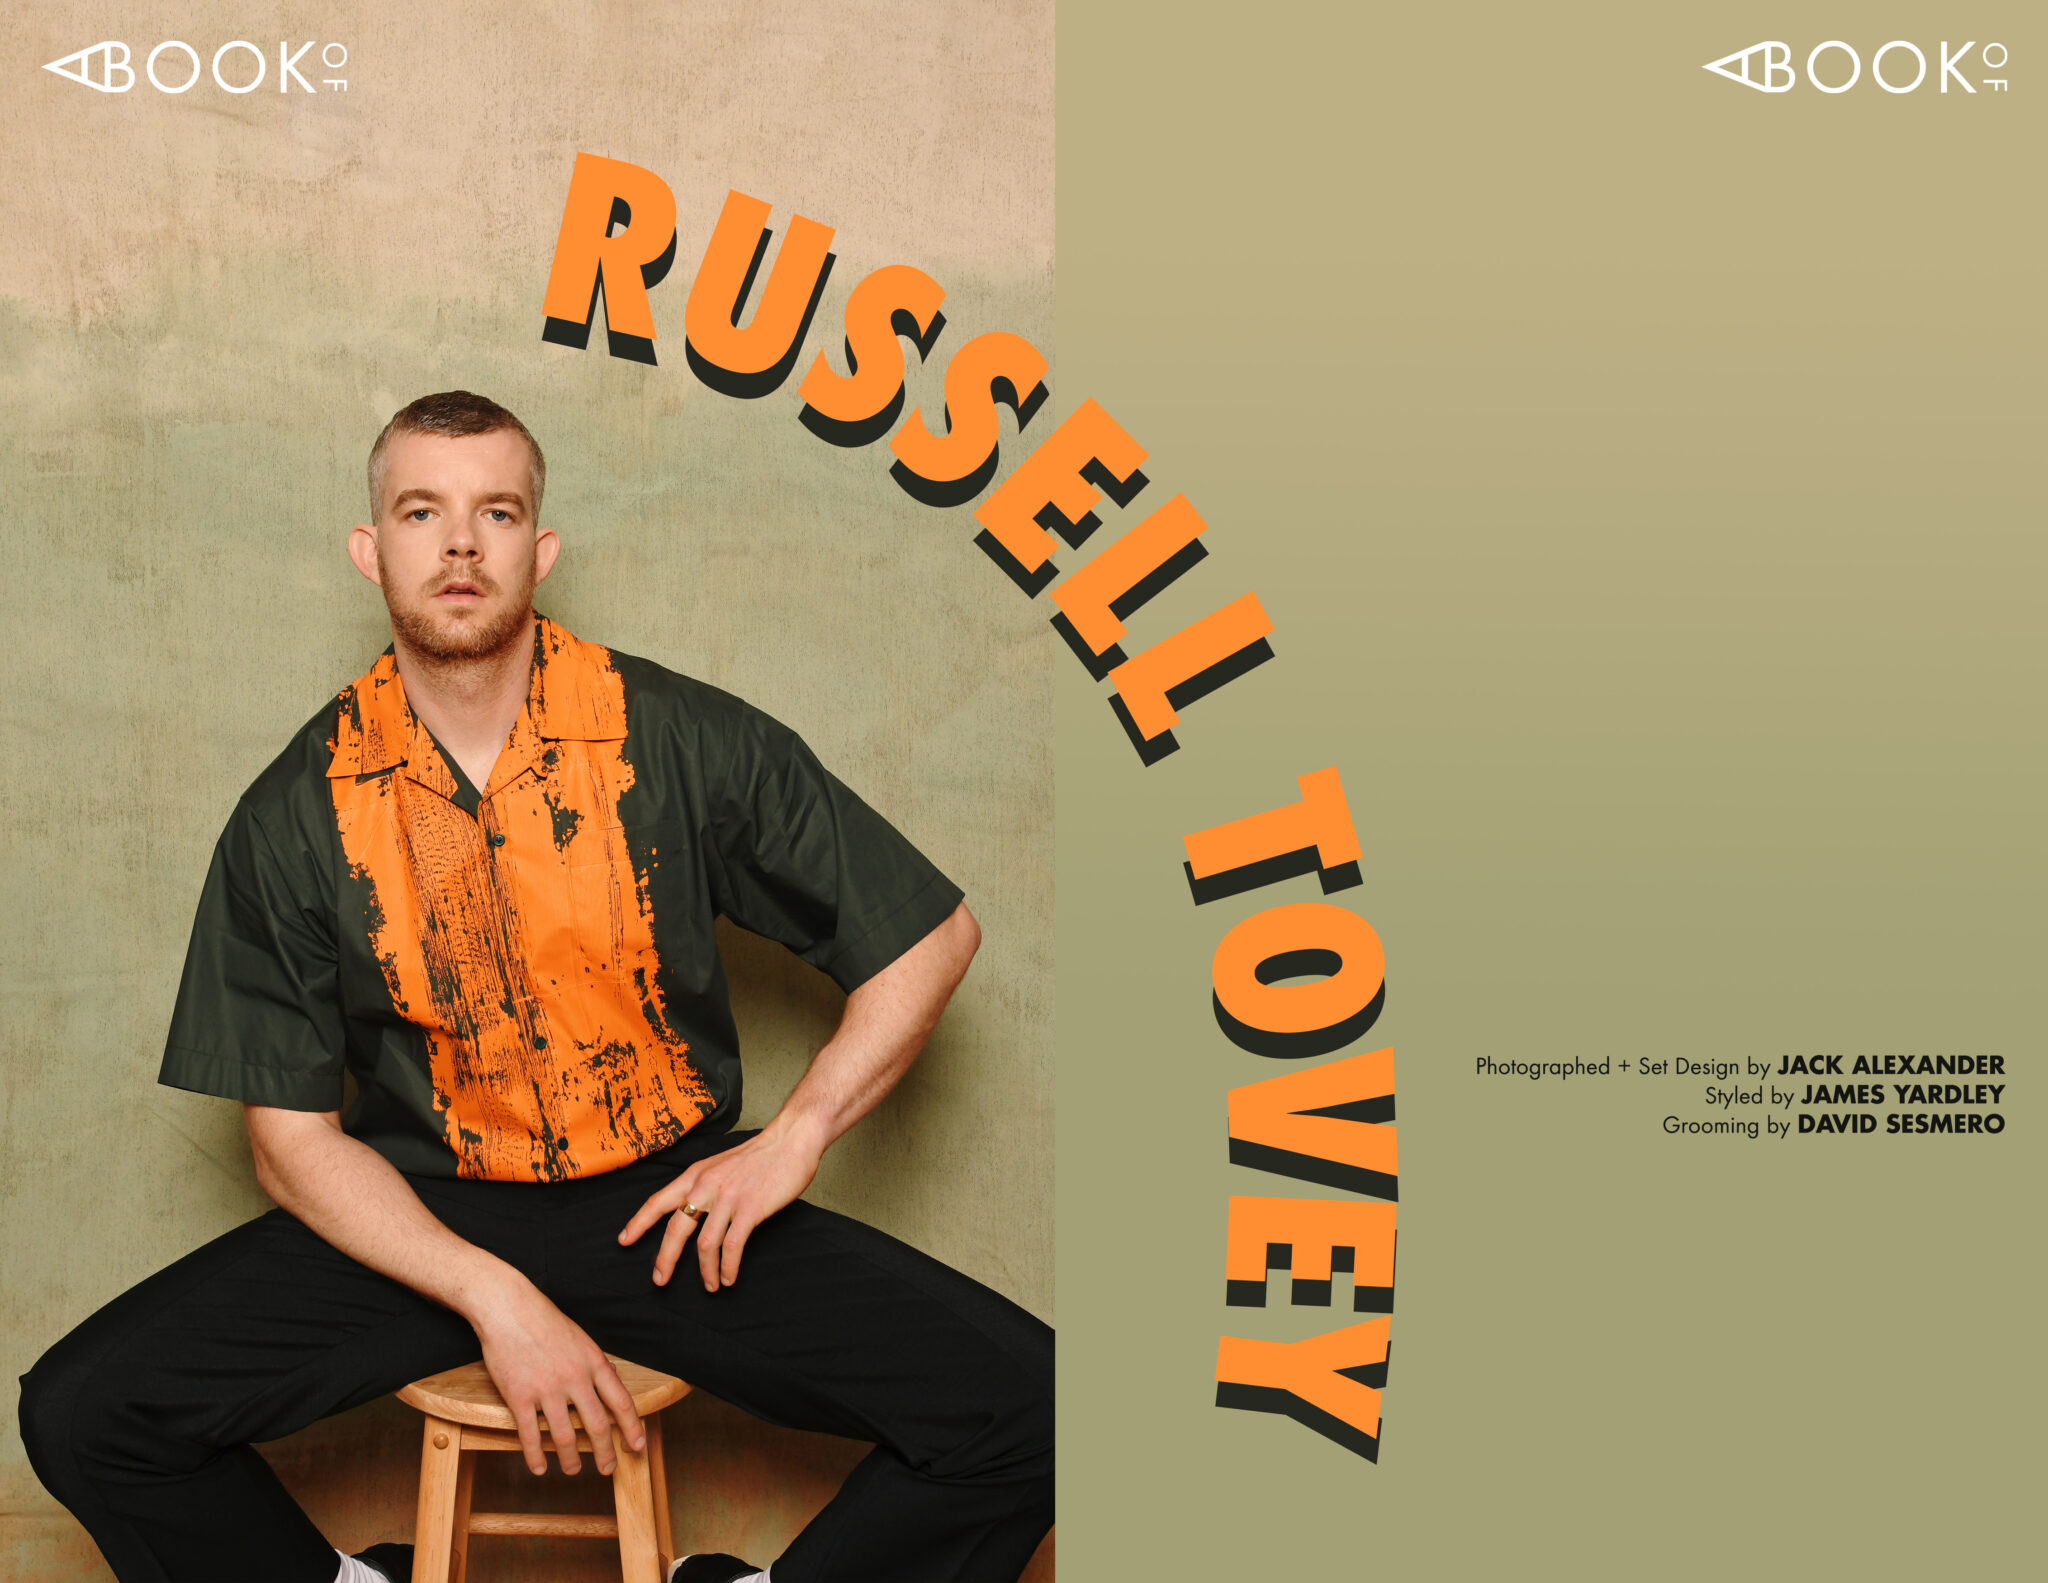 ABOOKOF_RUSSELL_TOVEY_1